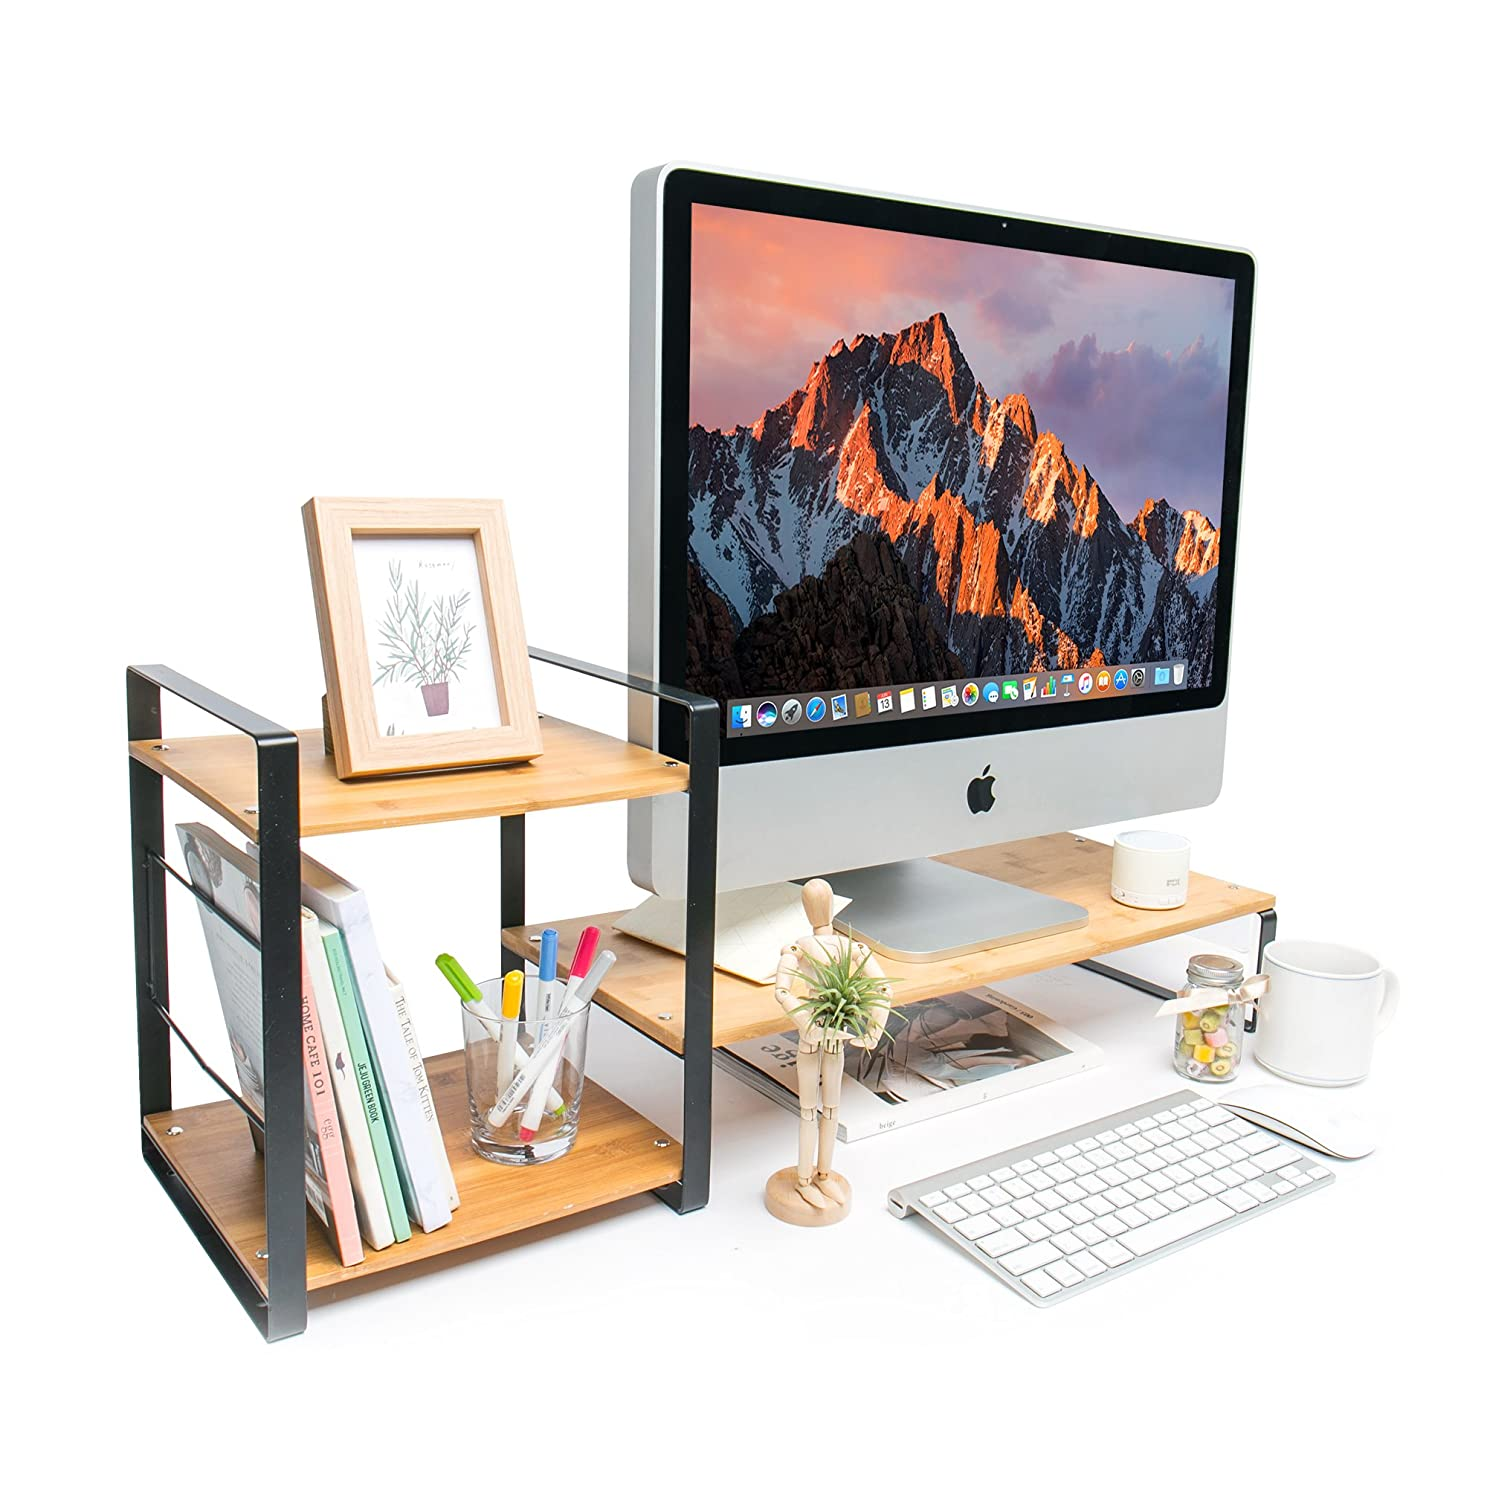 MK363A JackCubeDesign Bamboo Monitor Stand Computer Riser Laptop Desktop Storage Organiser Phone Board with 2-Tier Compartments and Keyboard Storage Space